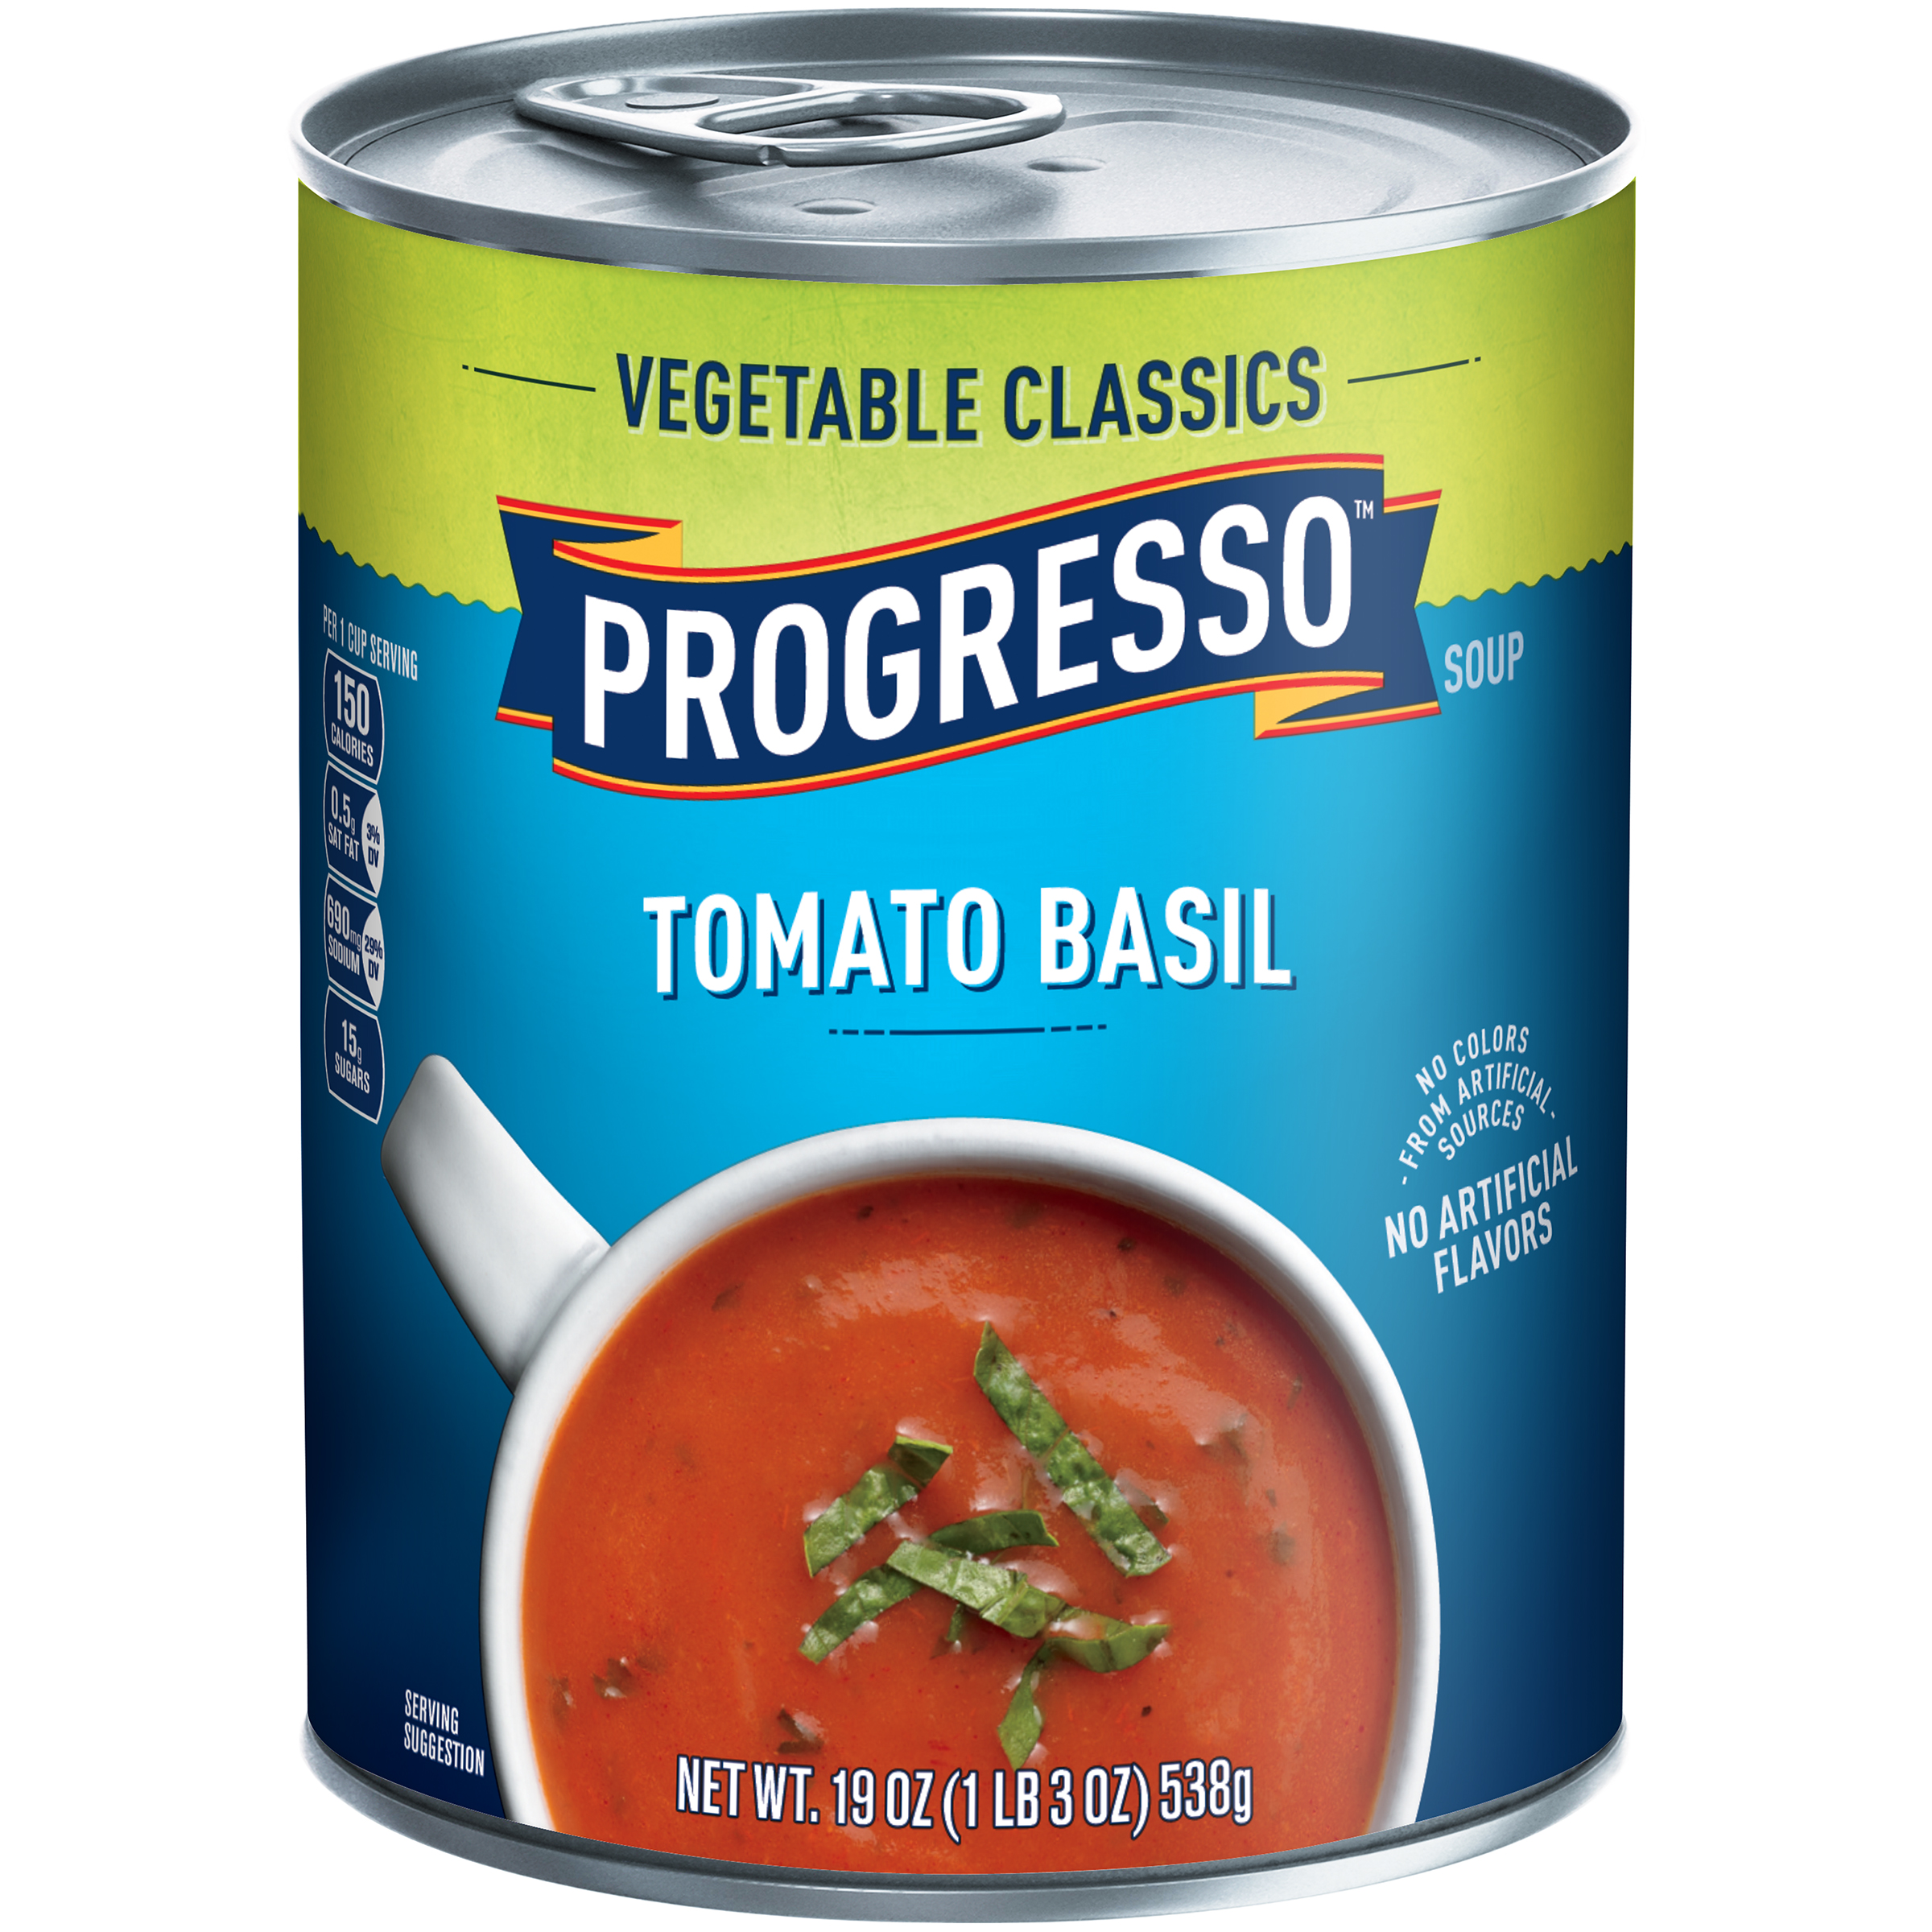 Progresso��� Vegetable Classics Tomato Basil Soup 19 oz. Can